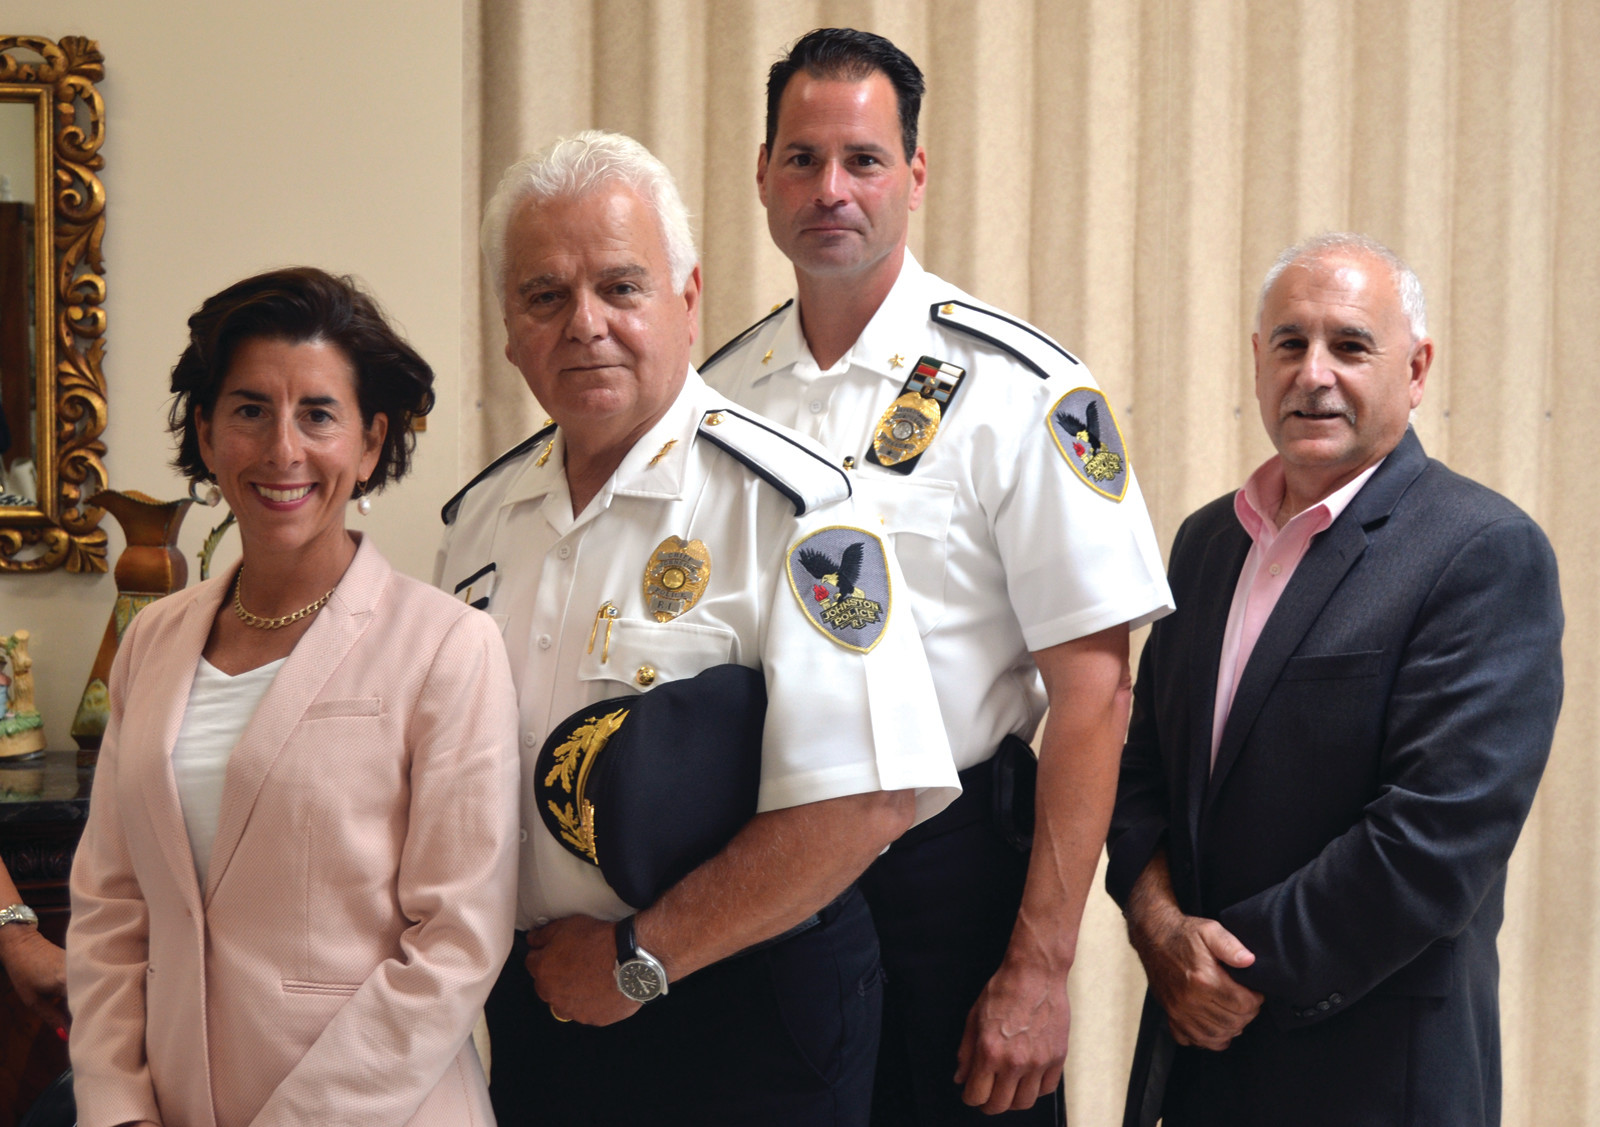 GOVERNOR'S VISIT: Gov. Raimondo met with Chief Richard Tamburini and Deputy Chief Joseph Razza, along with Mayor Polisena this week.